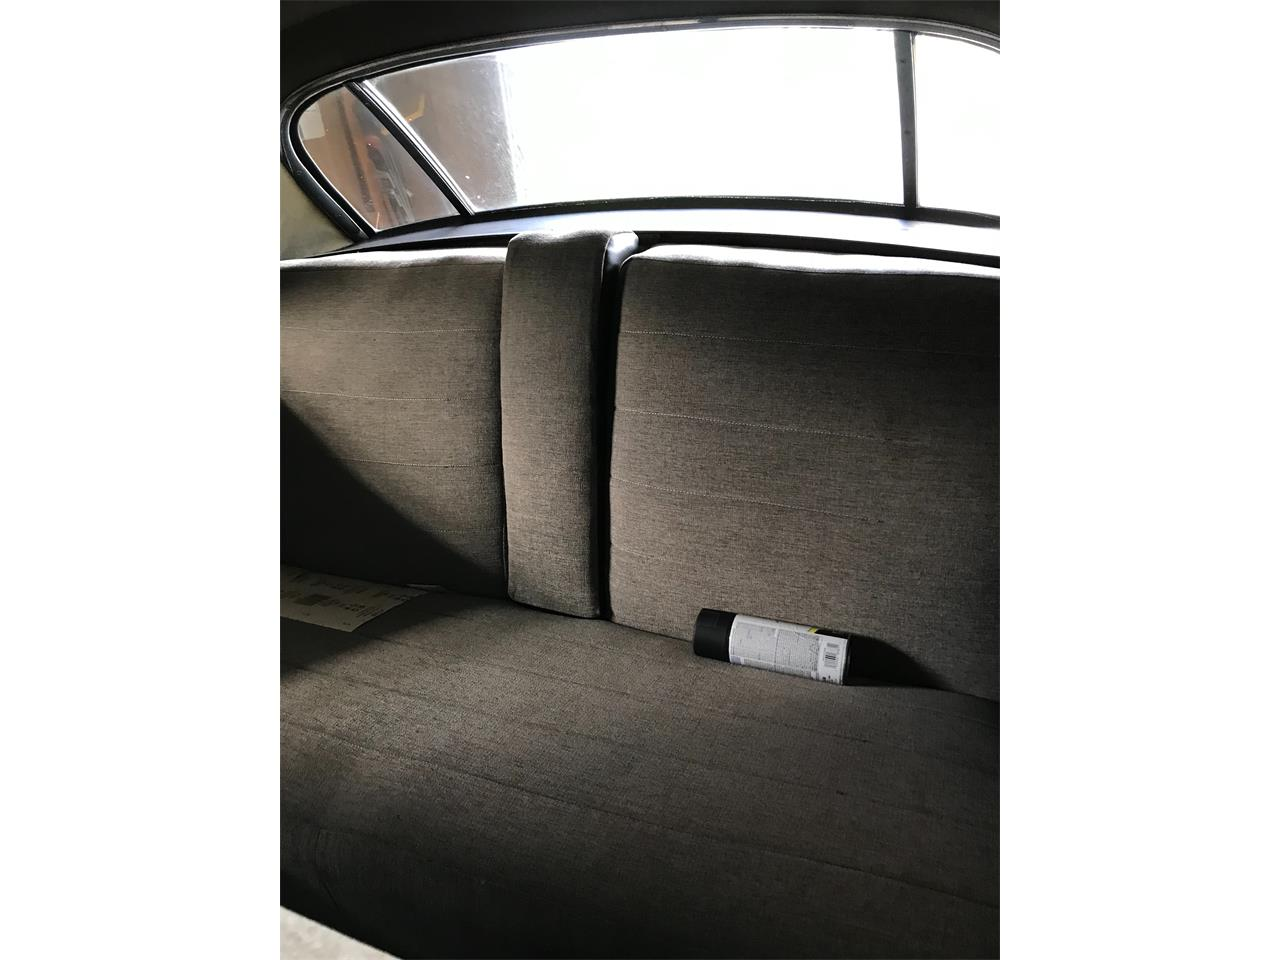 1949 Cadillac 4-Dr Sedan for sale in Land O Lakes, FL – photo 23